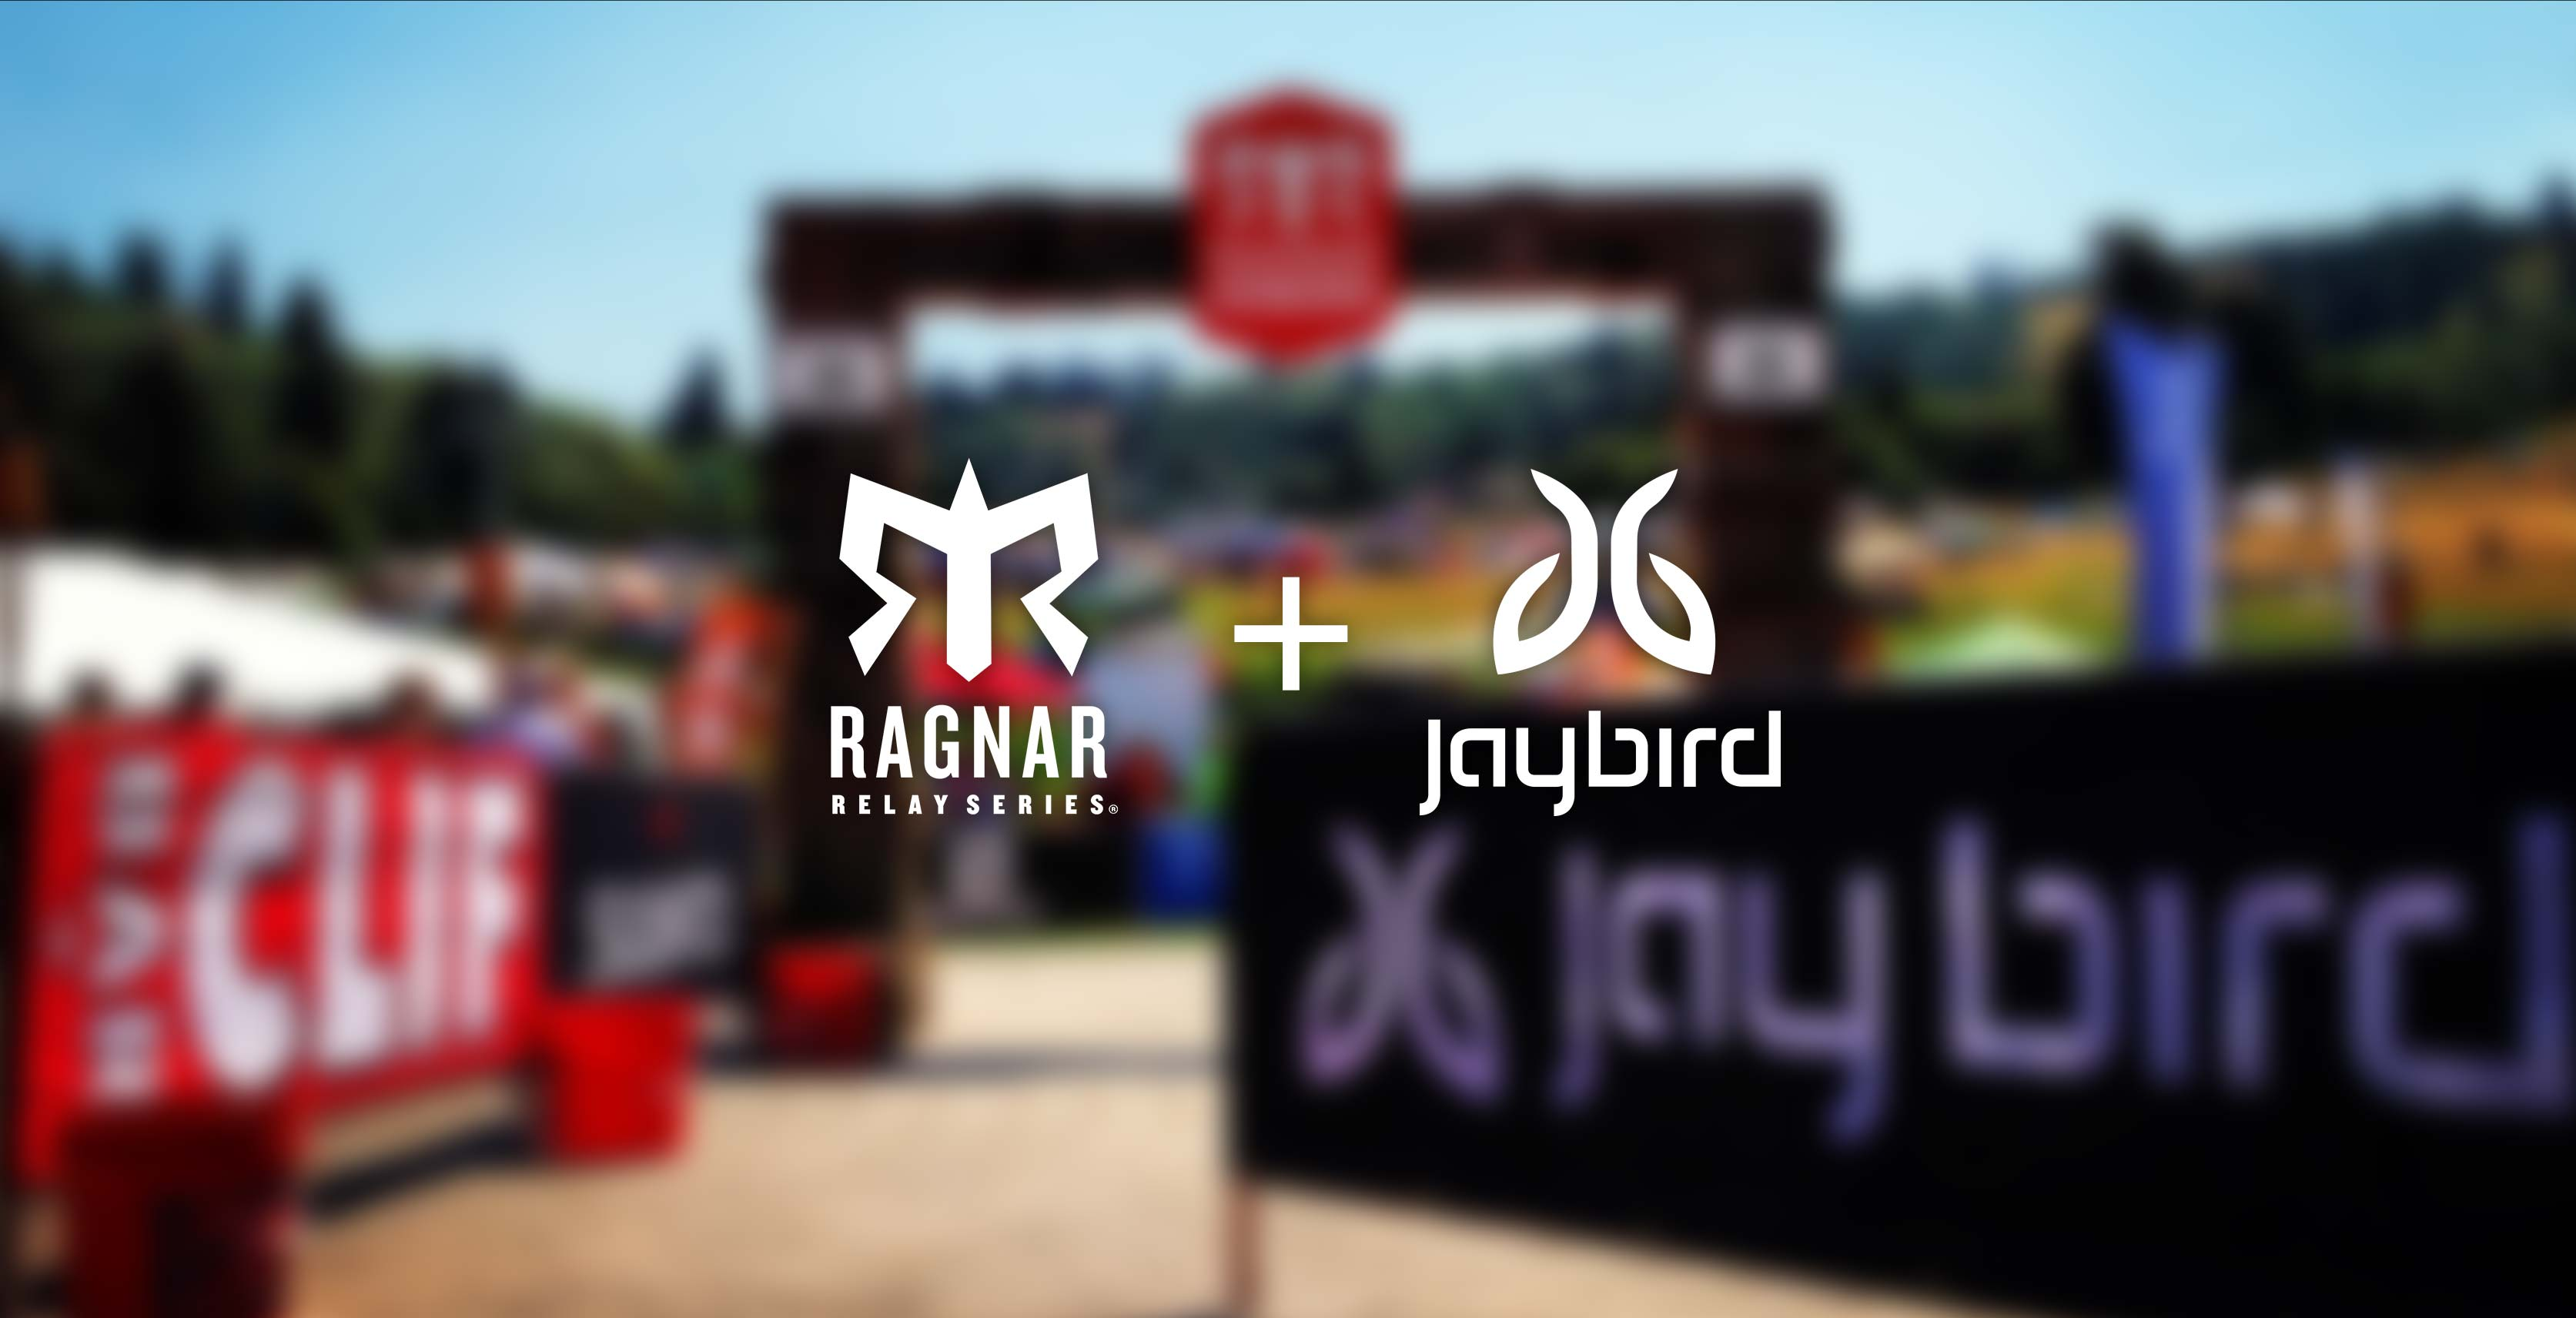 Jaybird Ragnar Partnership Background